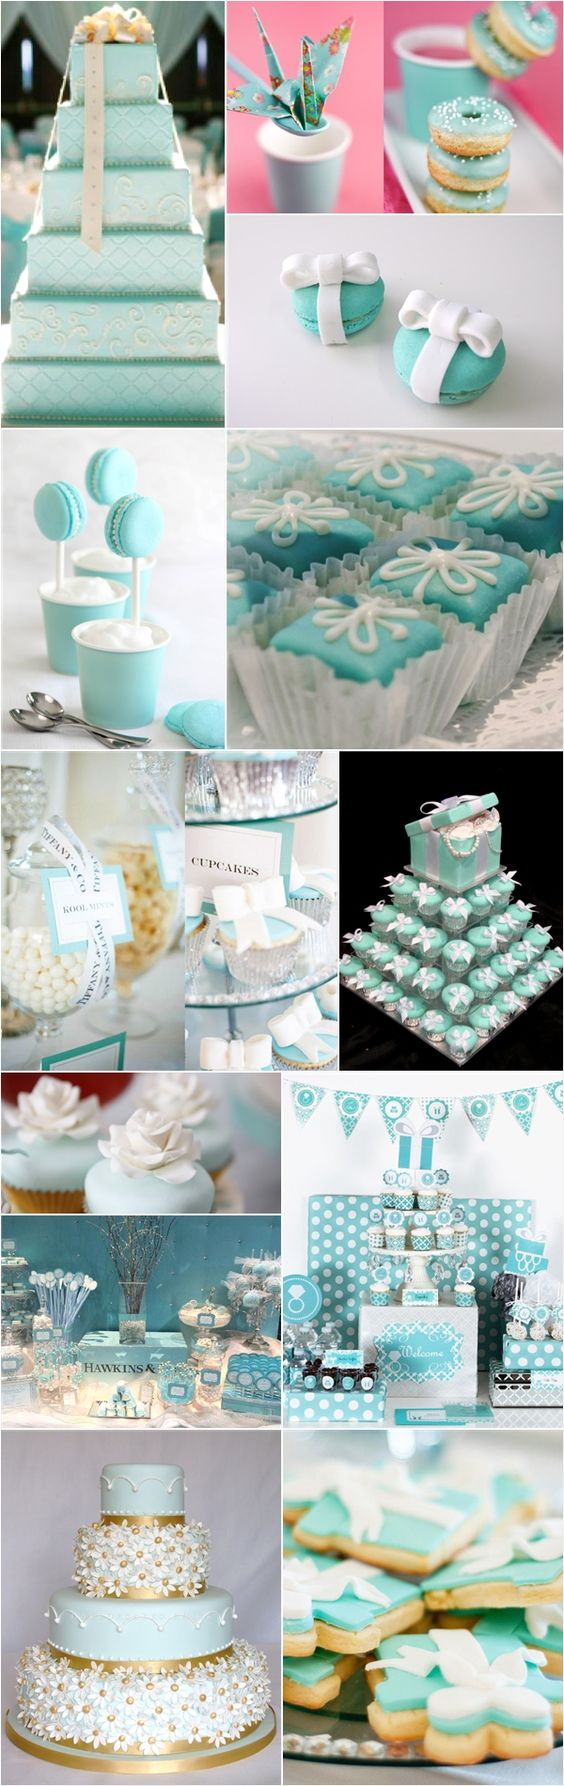 Tiffany-inspired elegant wedding cake designs.